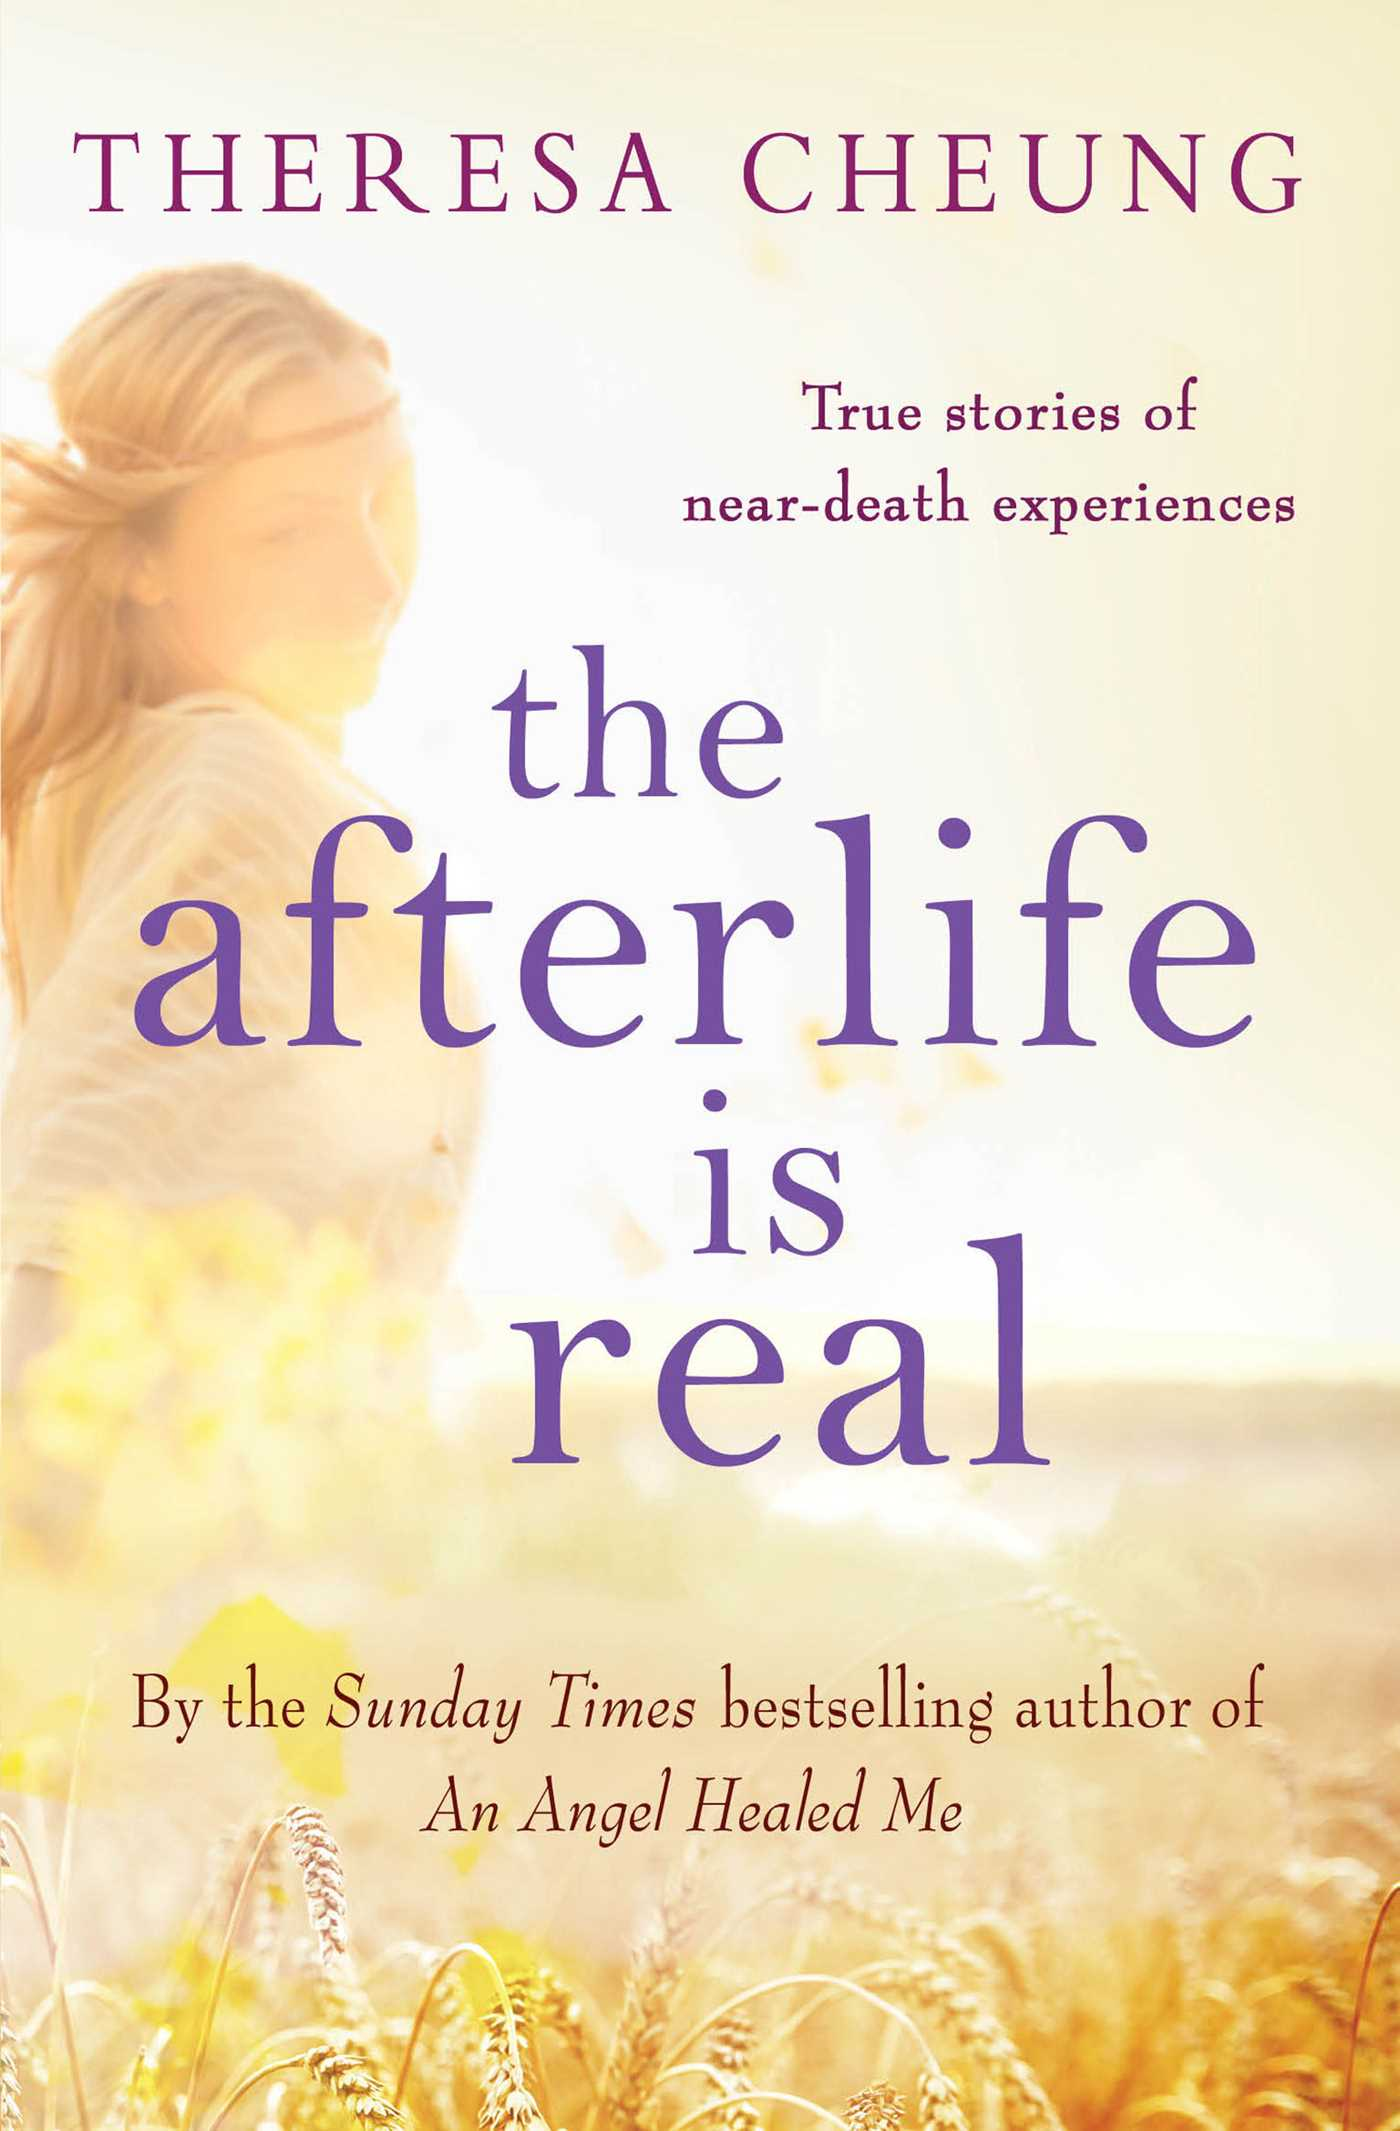 The afterlife is real 9781471112362 hr